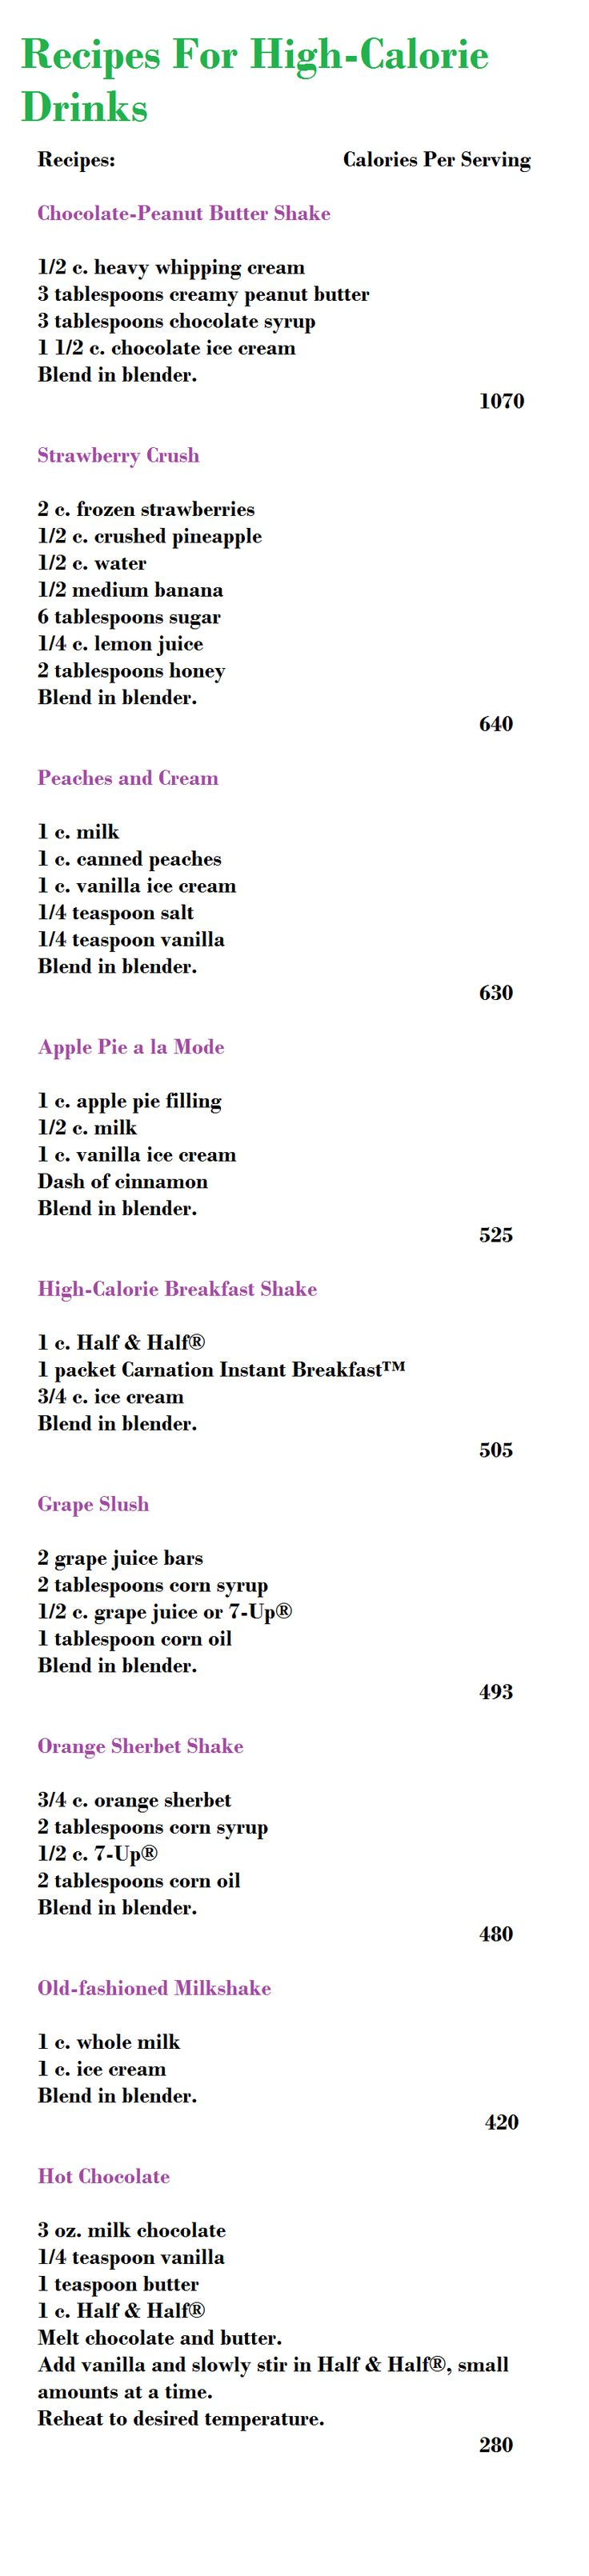 Recipes For High-Calorie Drinks